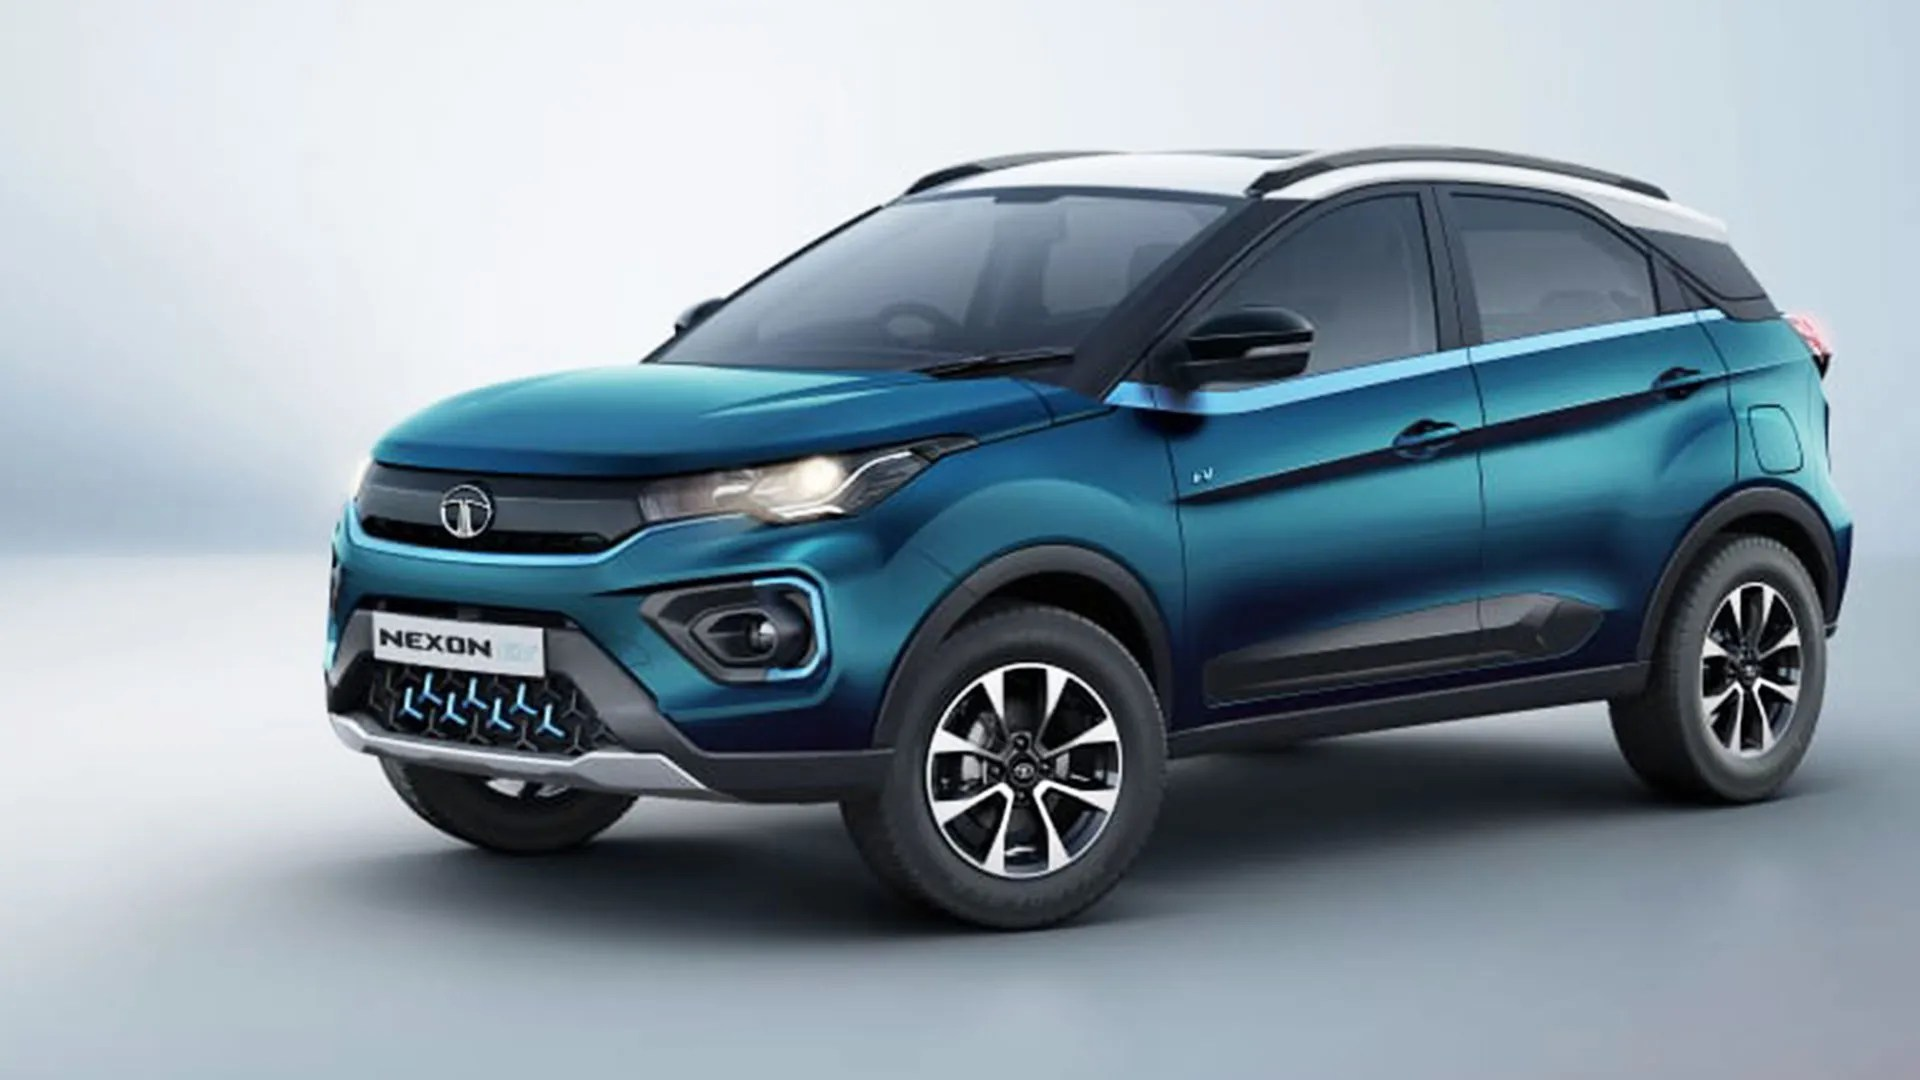 Tata Nexon EV unveiled: Everything you want to know about Tata's homegrown all-electric SUV - Flipboard